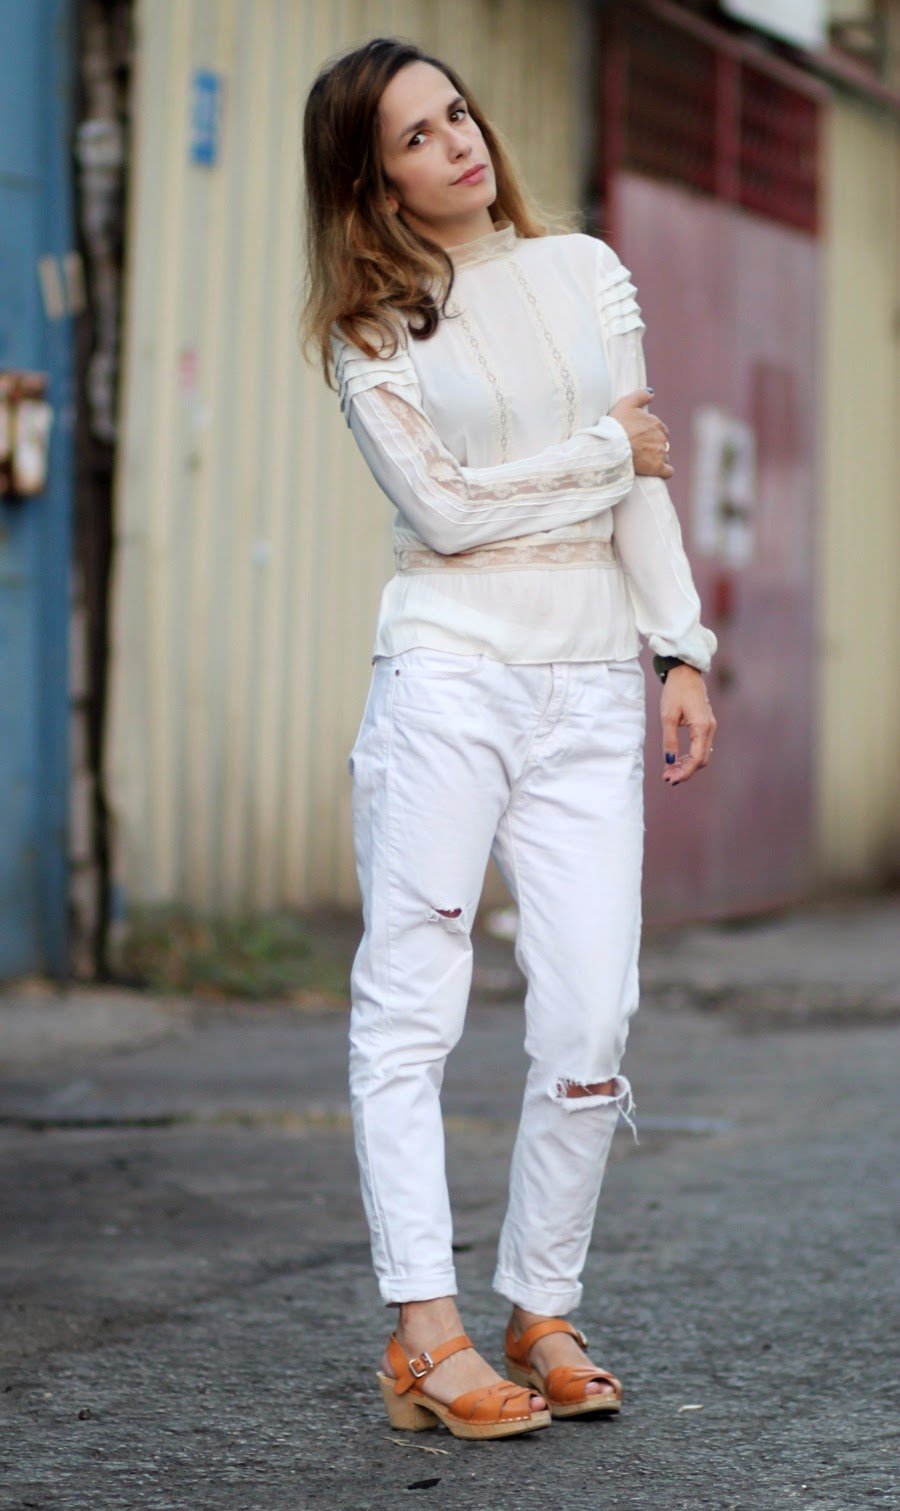 tryit, wear, ootd, whitelook, lookoftheday, ss15, streetstyle, style, fashionblog, בלוג, בלוגאופנה, סטייל, סגנוןאופנה